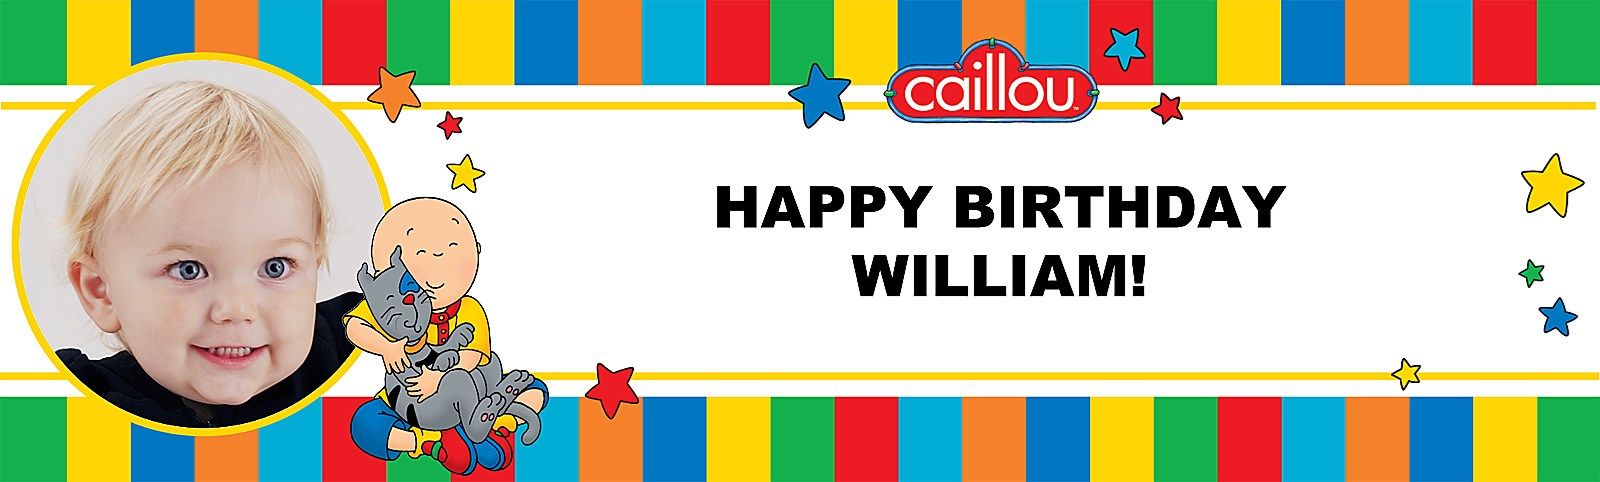 Caillou Personalized Photo Vinyl Banner | BirthdayExpress.com